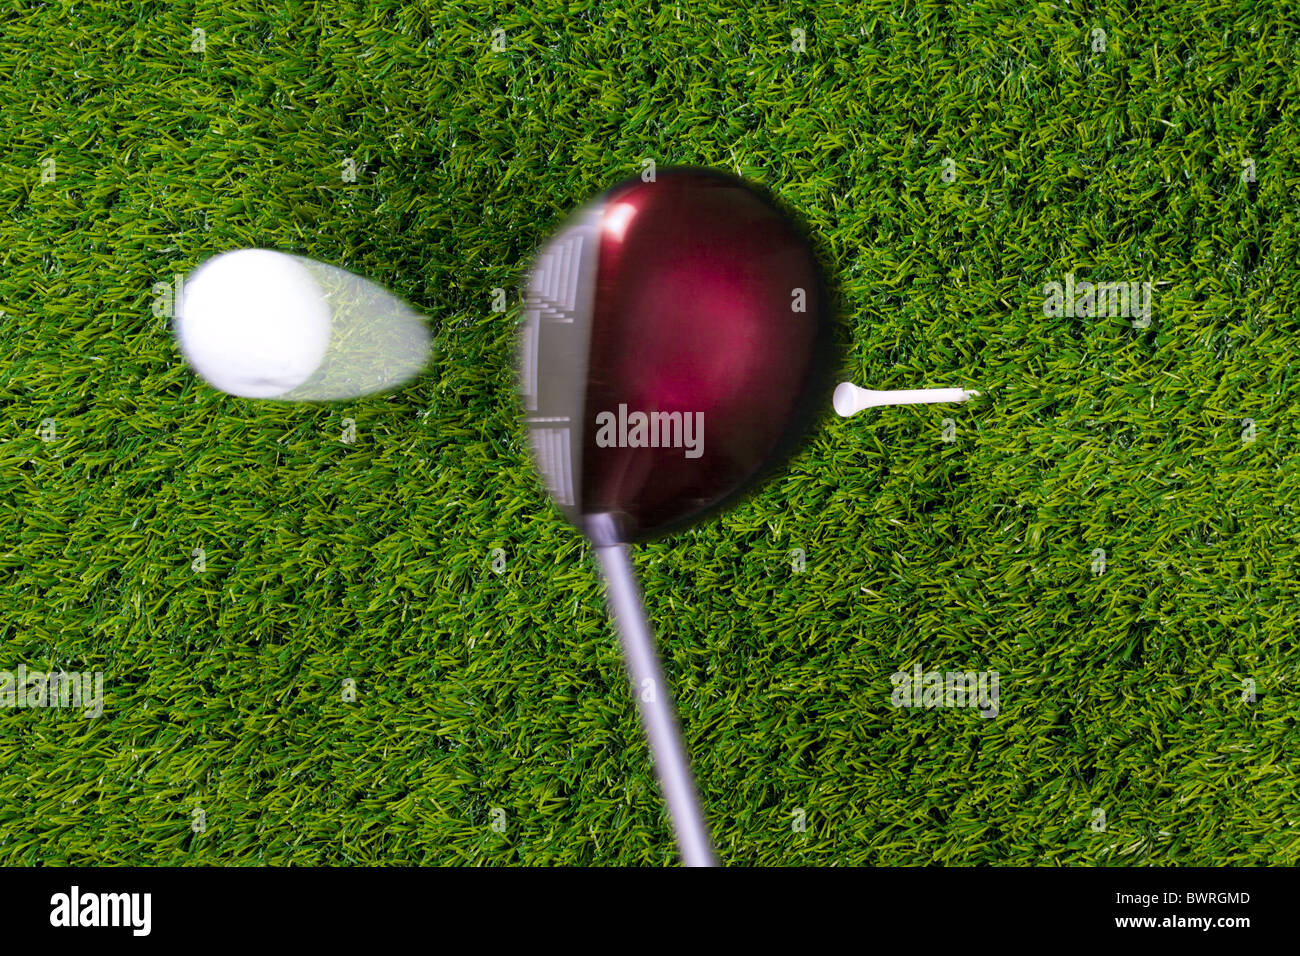 Photo of a driver hitting a golf ball off the tee with motion blur on the club and ball. Actual shot not photoshopped - Stock Image